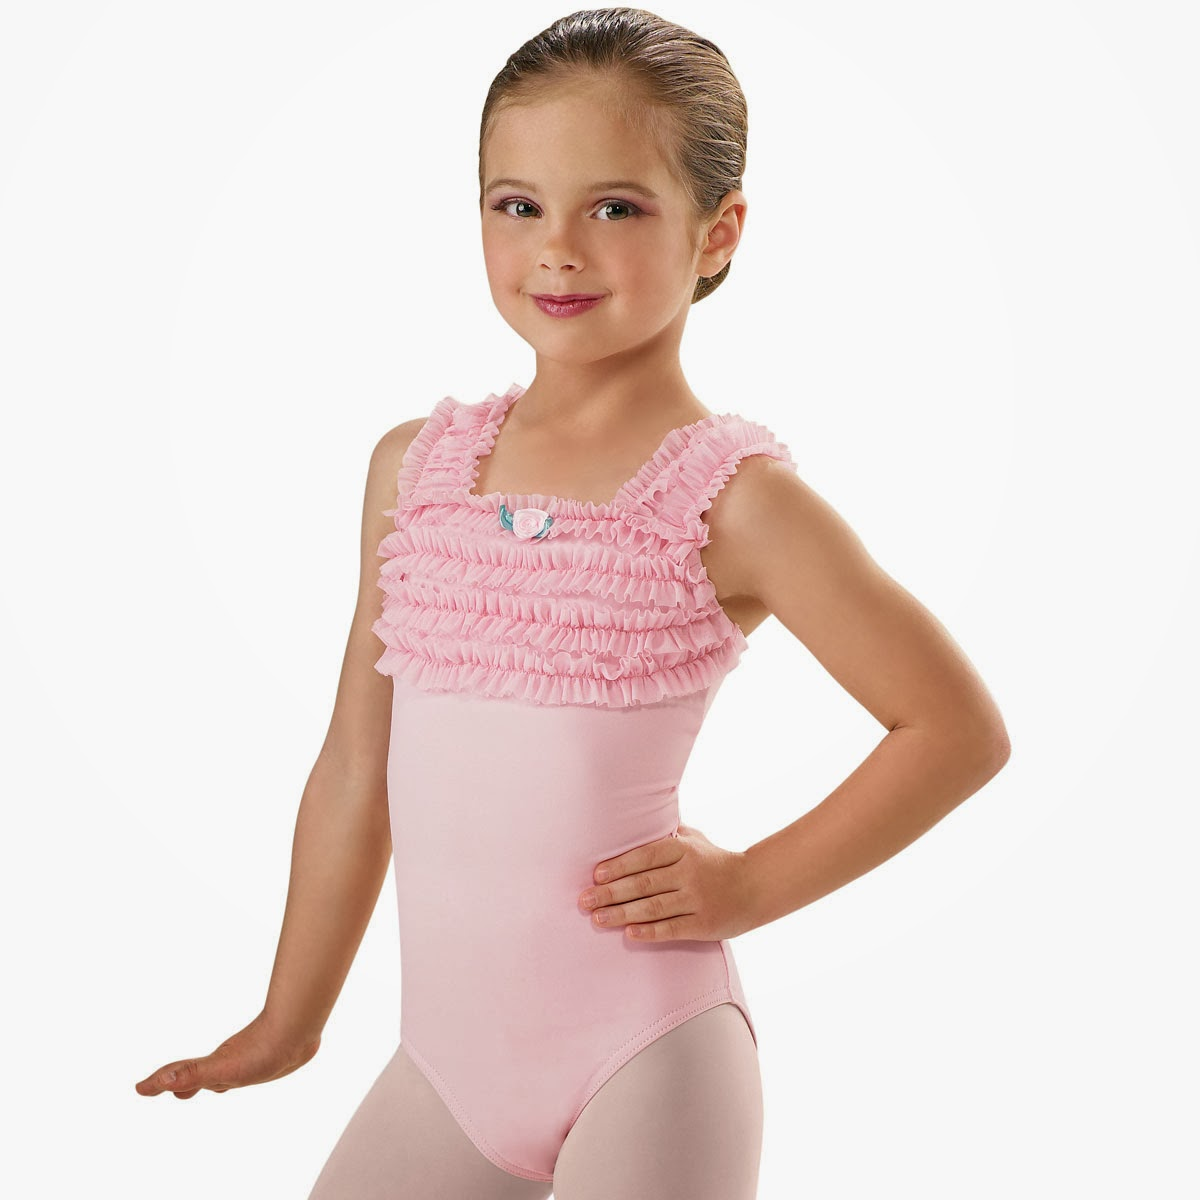 ce08d585e Girls Gymnastics Leotard